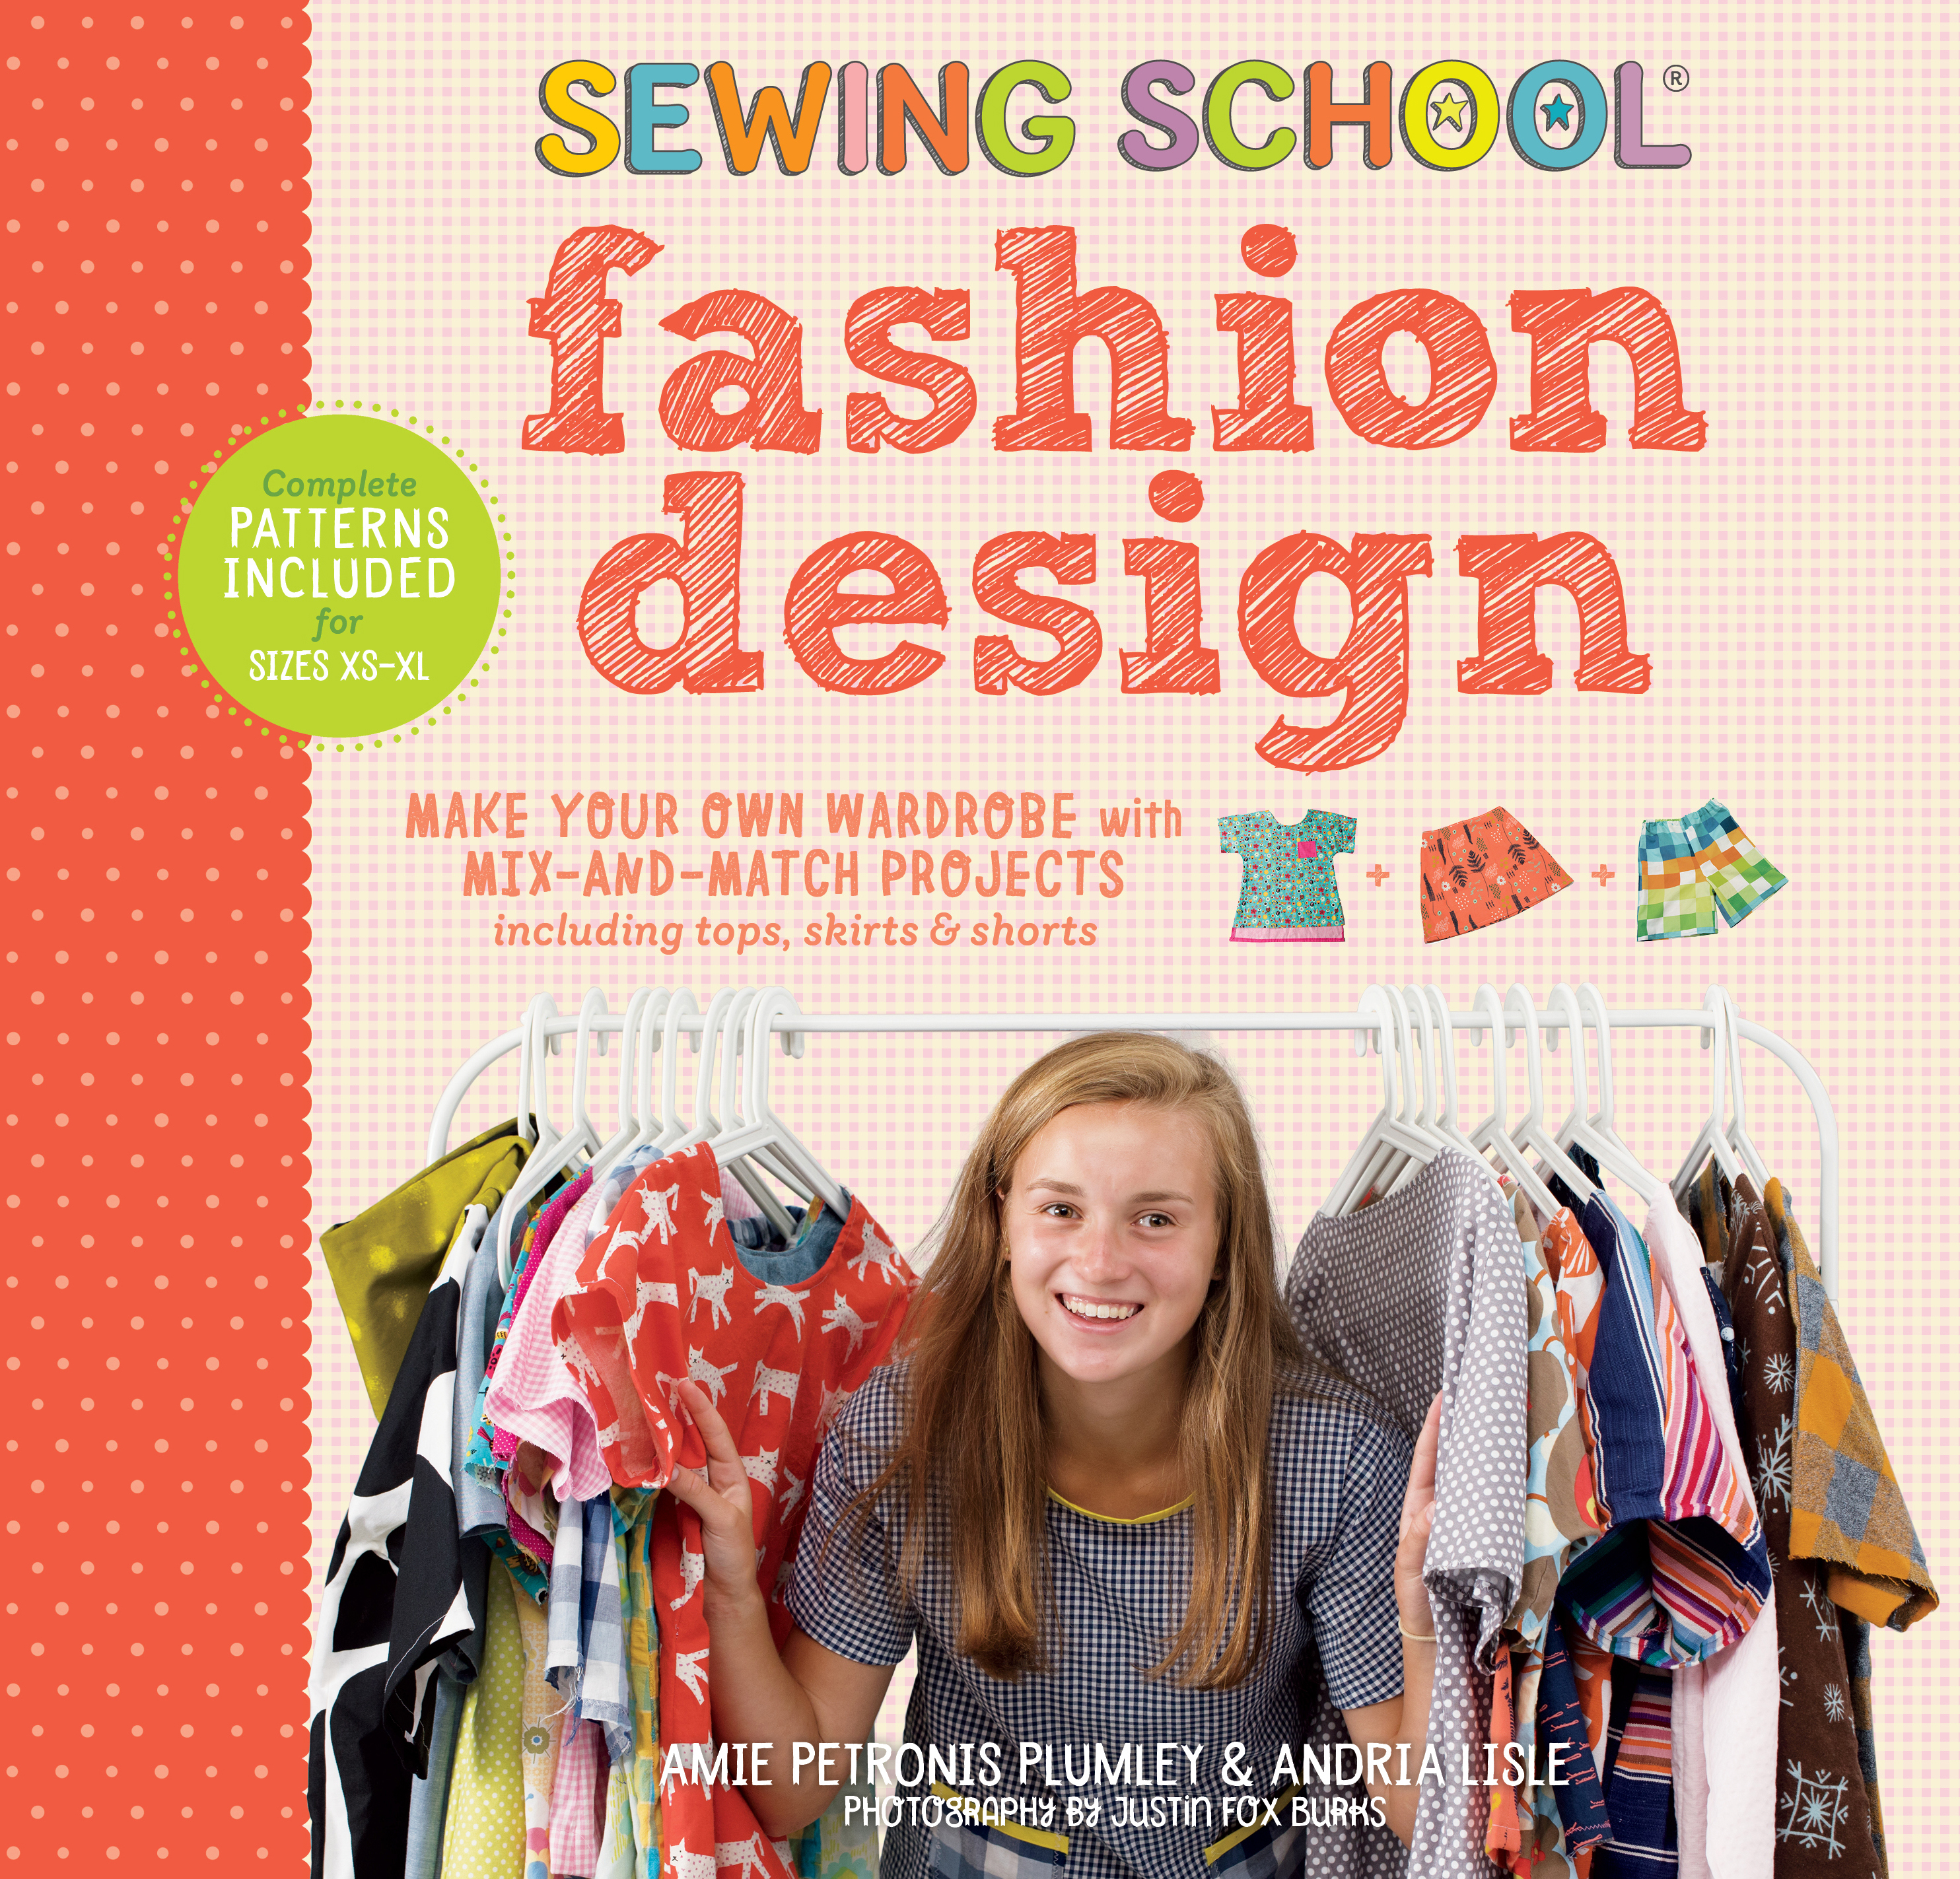 Sewing School <sup>®</sup> Fashion Design Make Your Own Wardrobe with Mix-and-Match Projects Including Tops, Skirts & Shorts - Amie Petronis Plumley